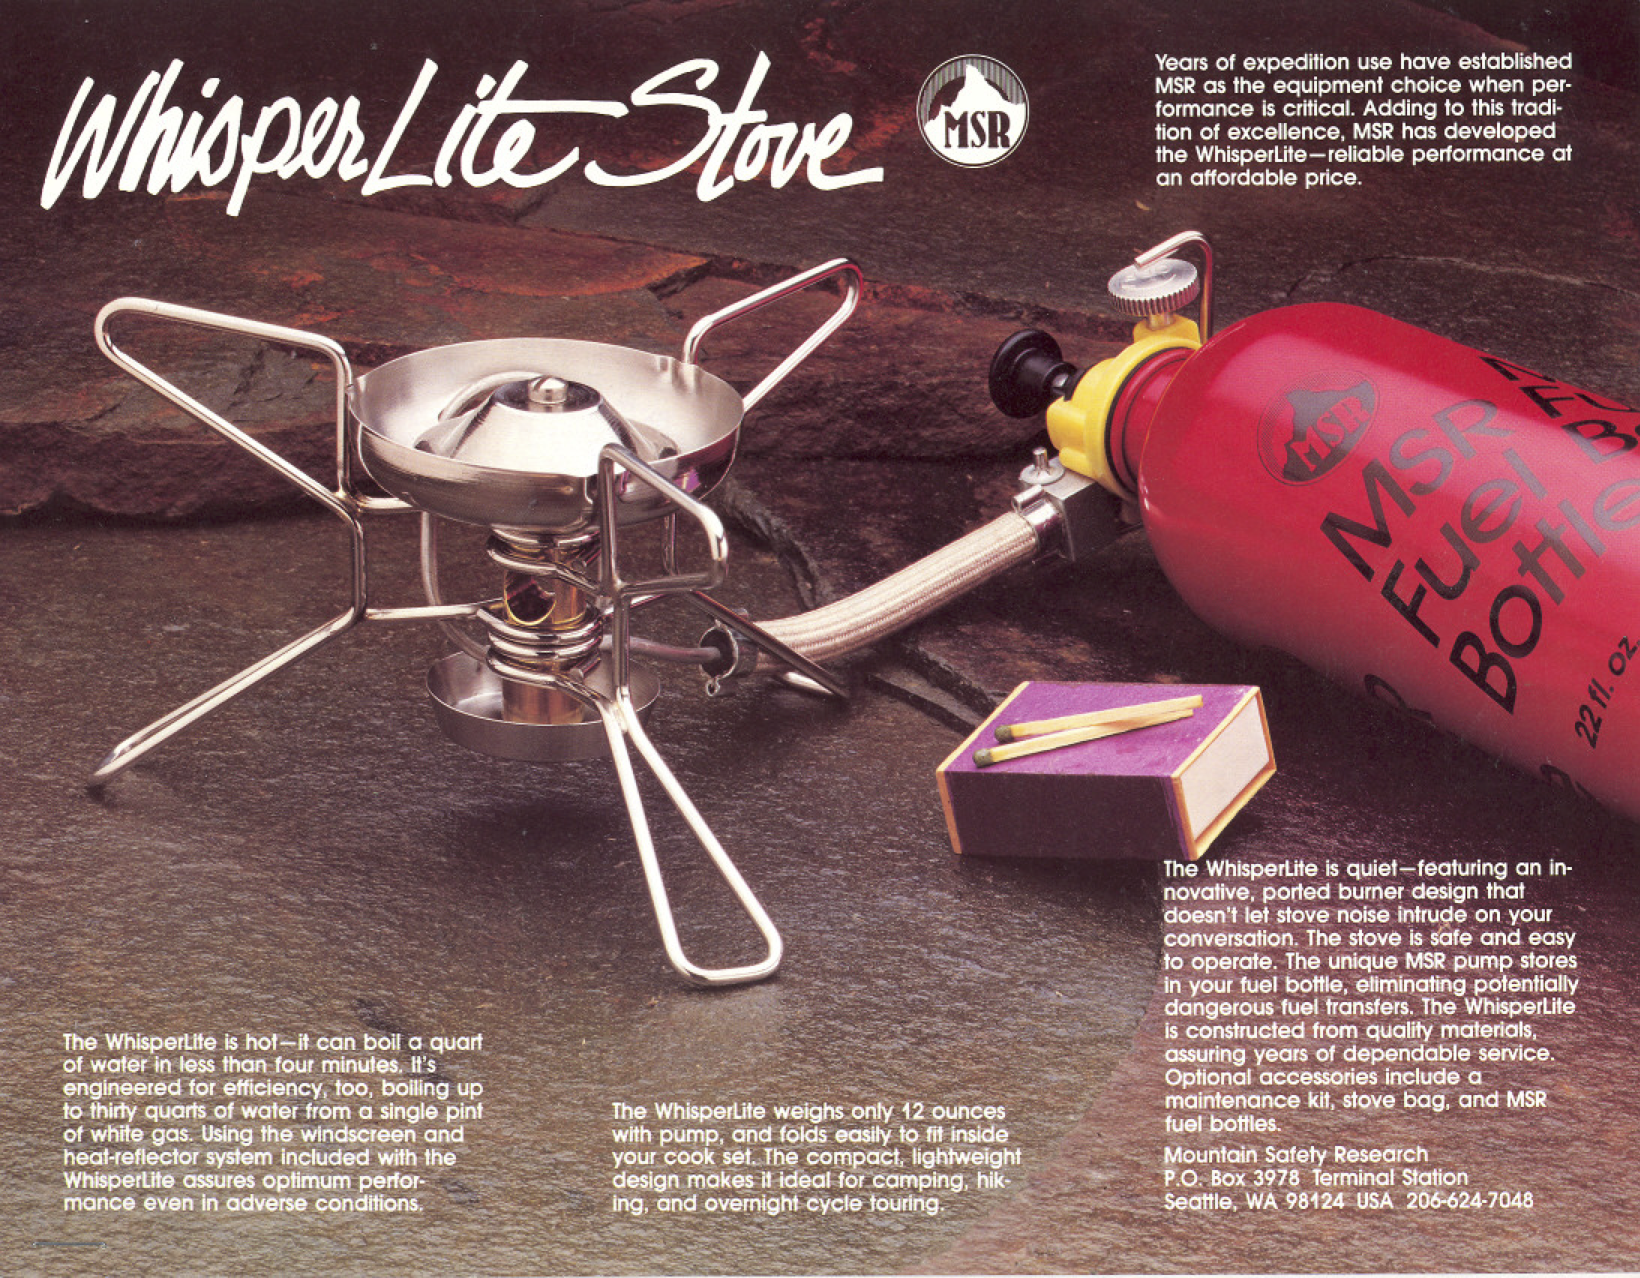 OCTOBER 26, 1984: MSR debuts WhisperLite™ Stove, the most